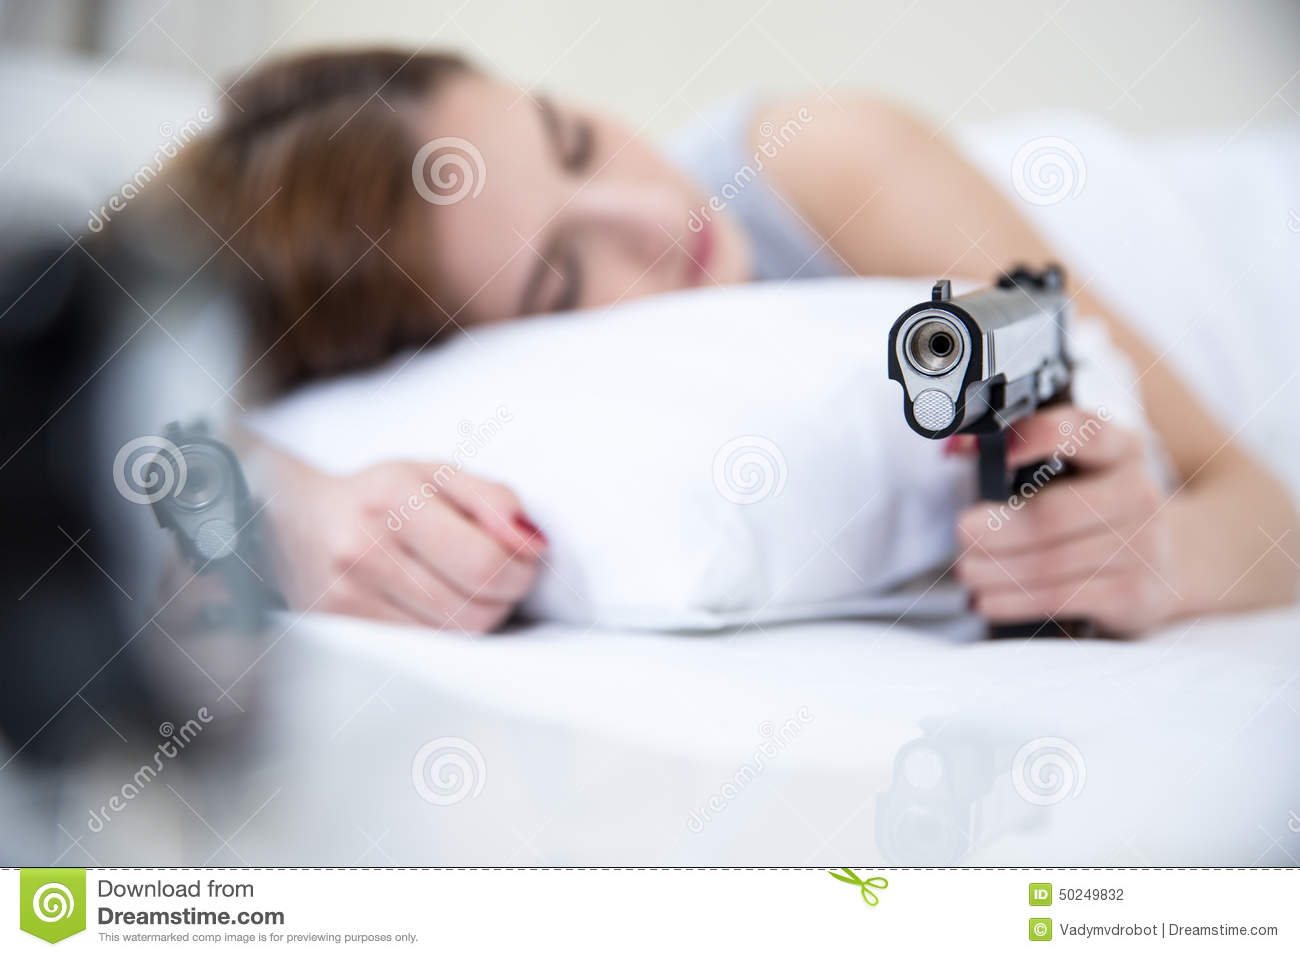 Gun Bed Sheets